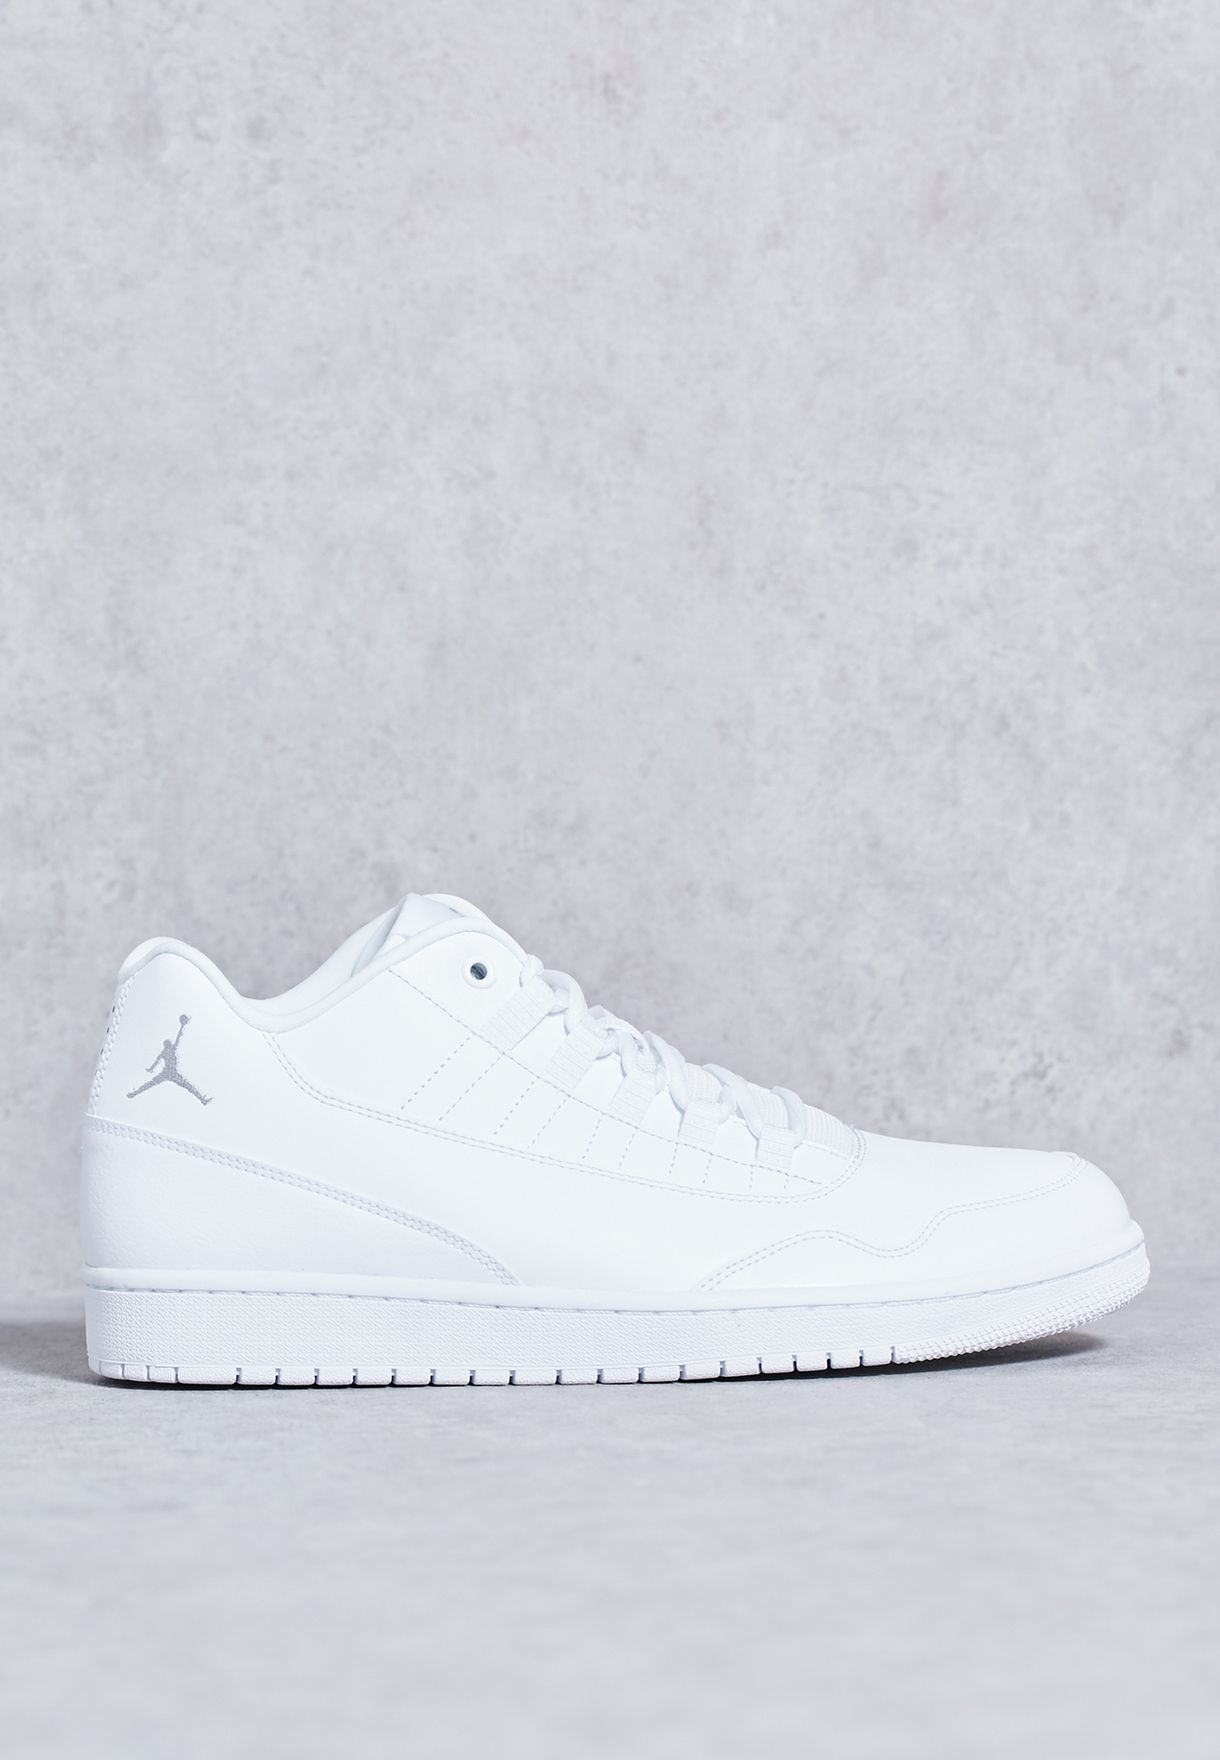 8058202d661 Shop Nike white Jordan Executive Low 833913-100 for Men in Kuwait ...